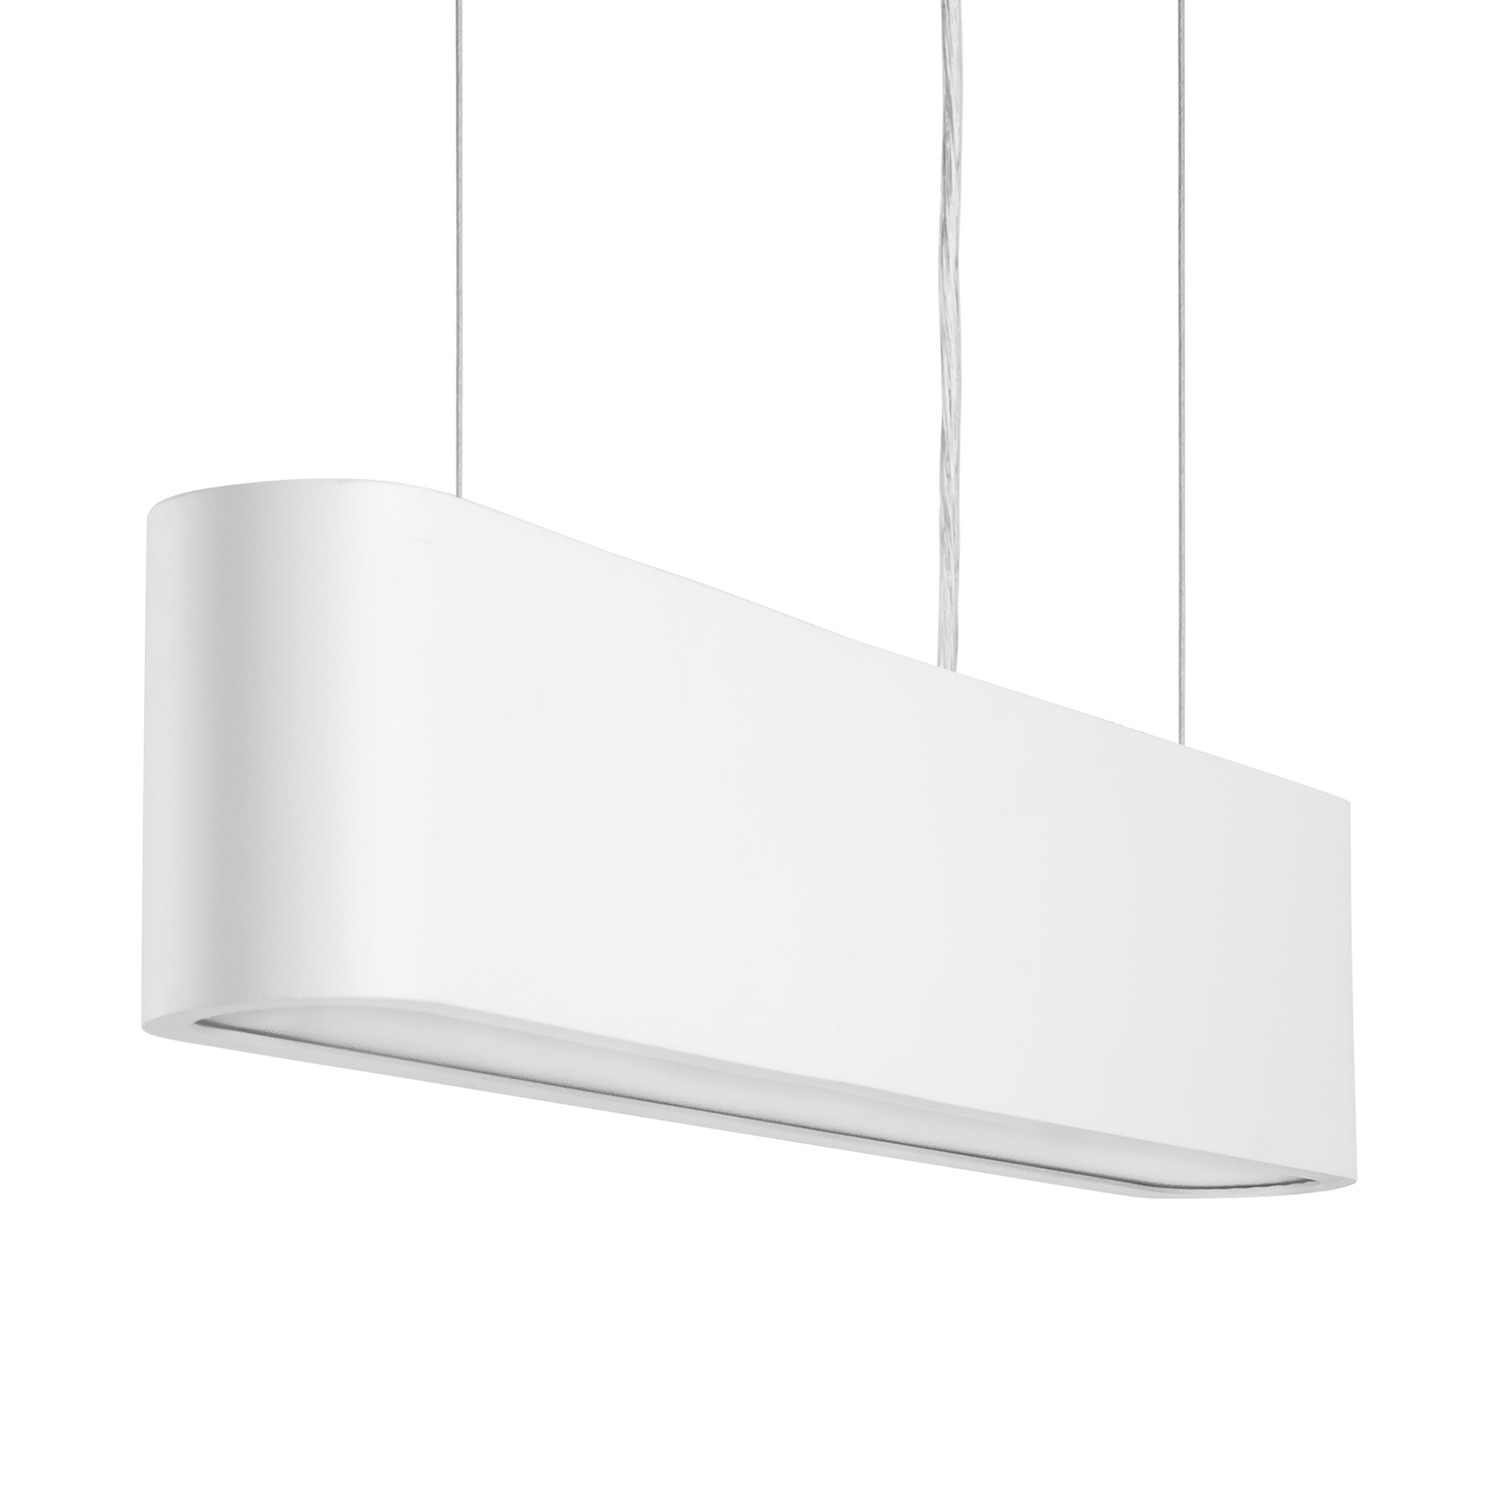 Pendelleuchte Illumina III, Spot Light